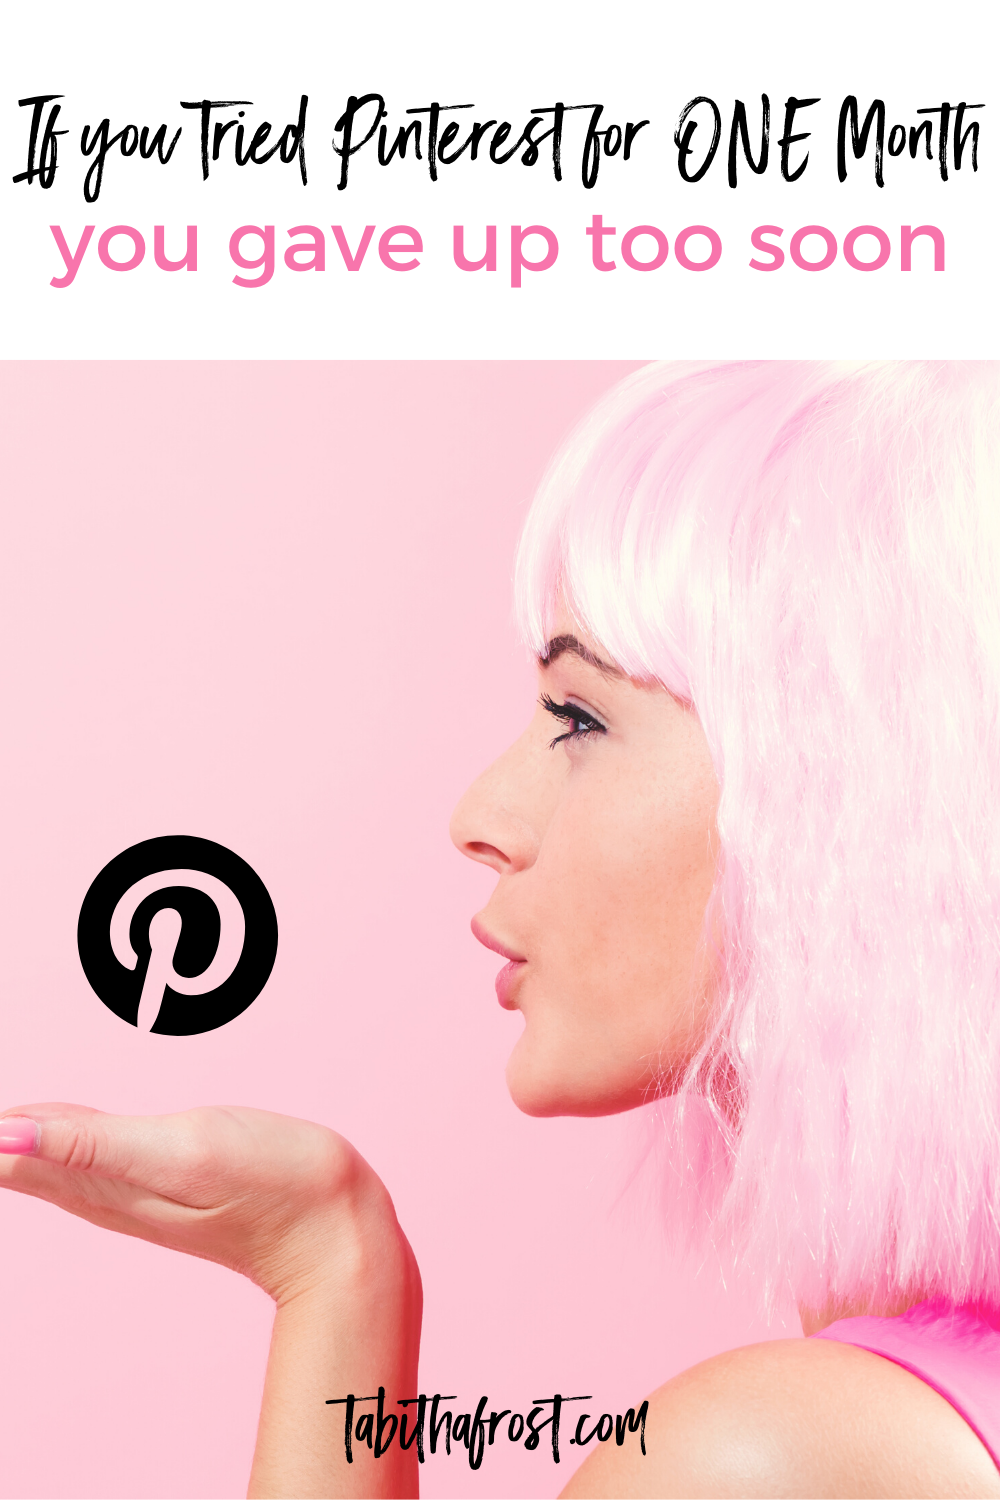 I hate to break it to you, but if you tried Pinterest for one month, you gave up too soon. Organic traffic takes time to grow and this absolutely remains true for Pinterest too. If you just started a business or maybe decide to try Pinterest for the first time, do not expect immediate results. Here are the realities of Pinterest marketing, Pinterest strategies and how to use Pinterest to market your business. #pinterest #pinterestmarketing